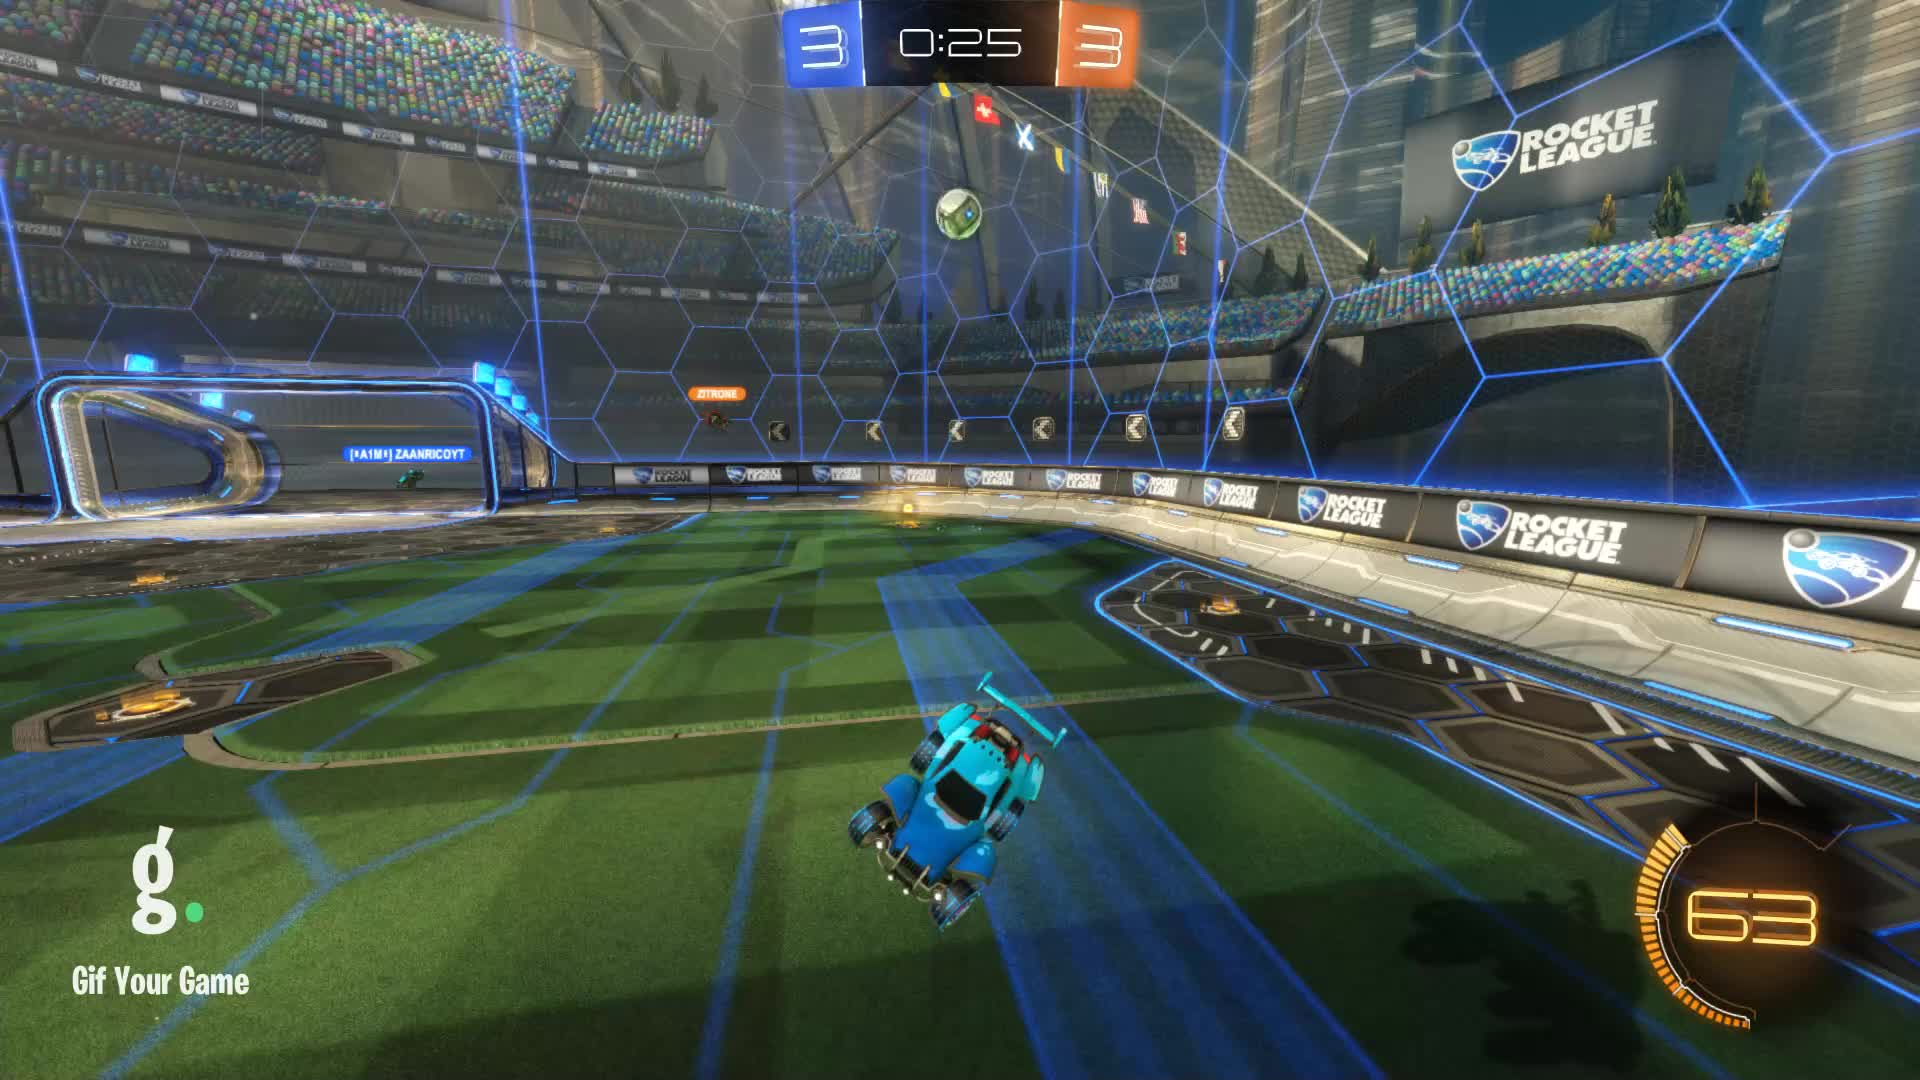 Assist, Gif Your Game, GifYourGame, Rocket League, RocketLeague, Timper [NL], Assist 5: Timper [NL] GIFs